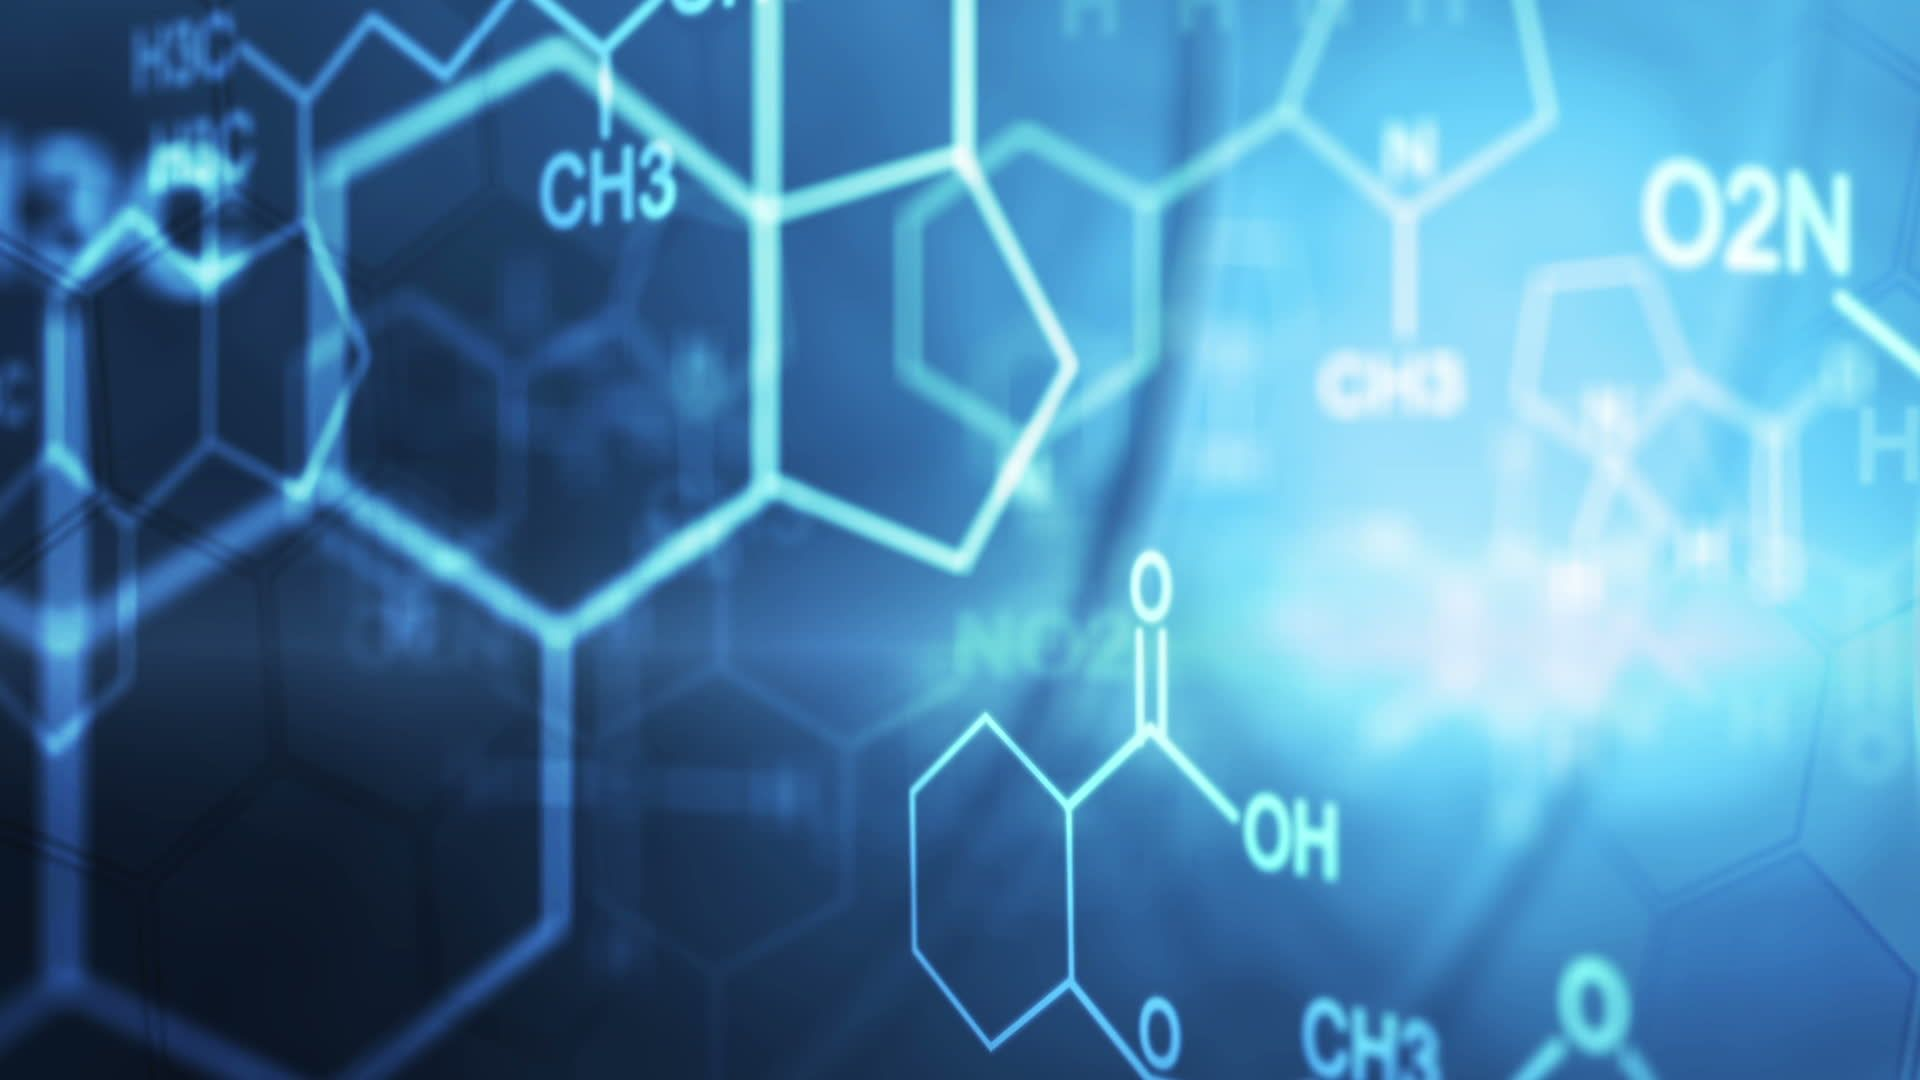 Organic Chemistry Wallpaper: Cool Chemistry Wallpapers